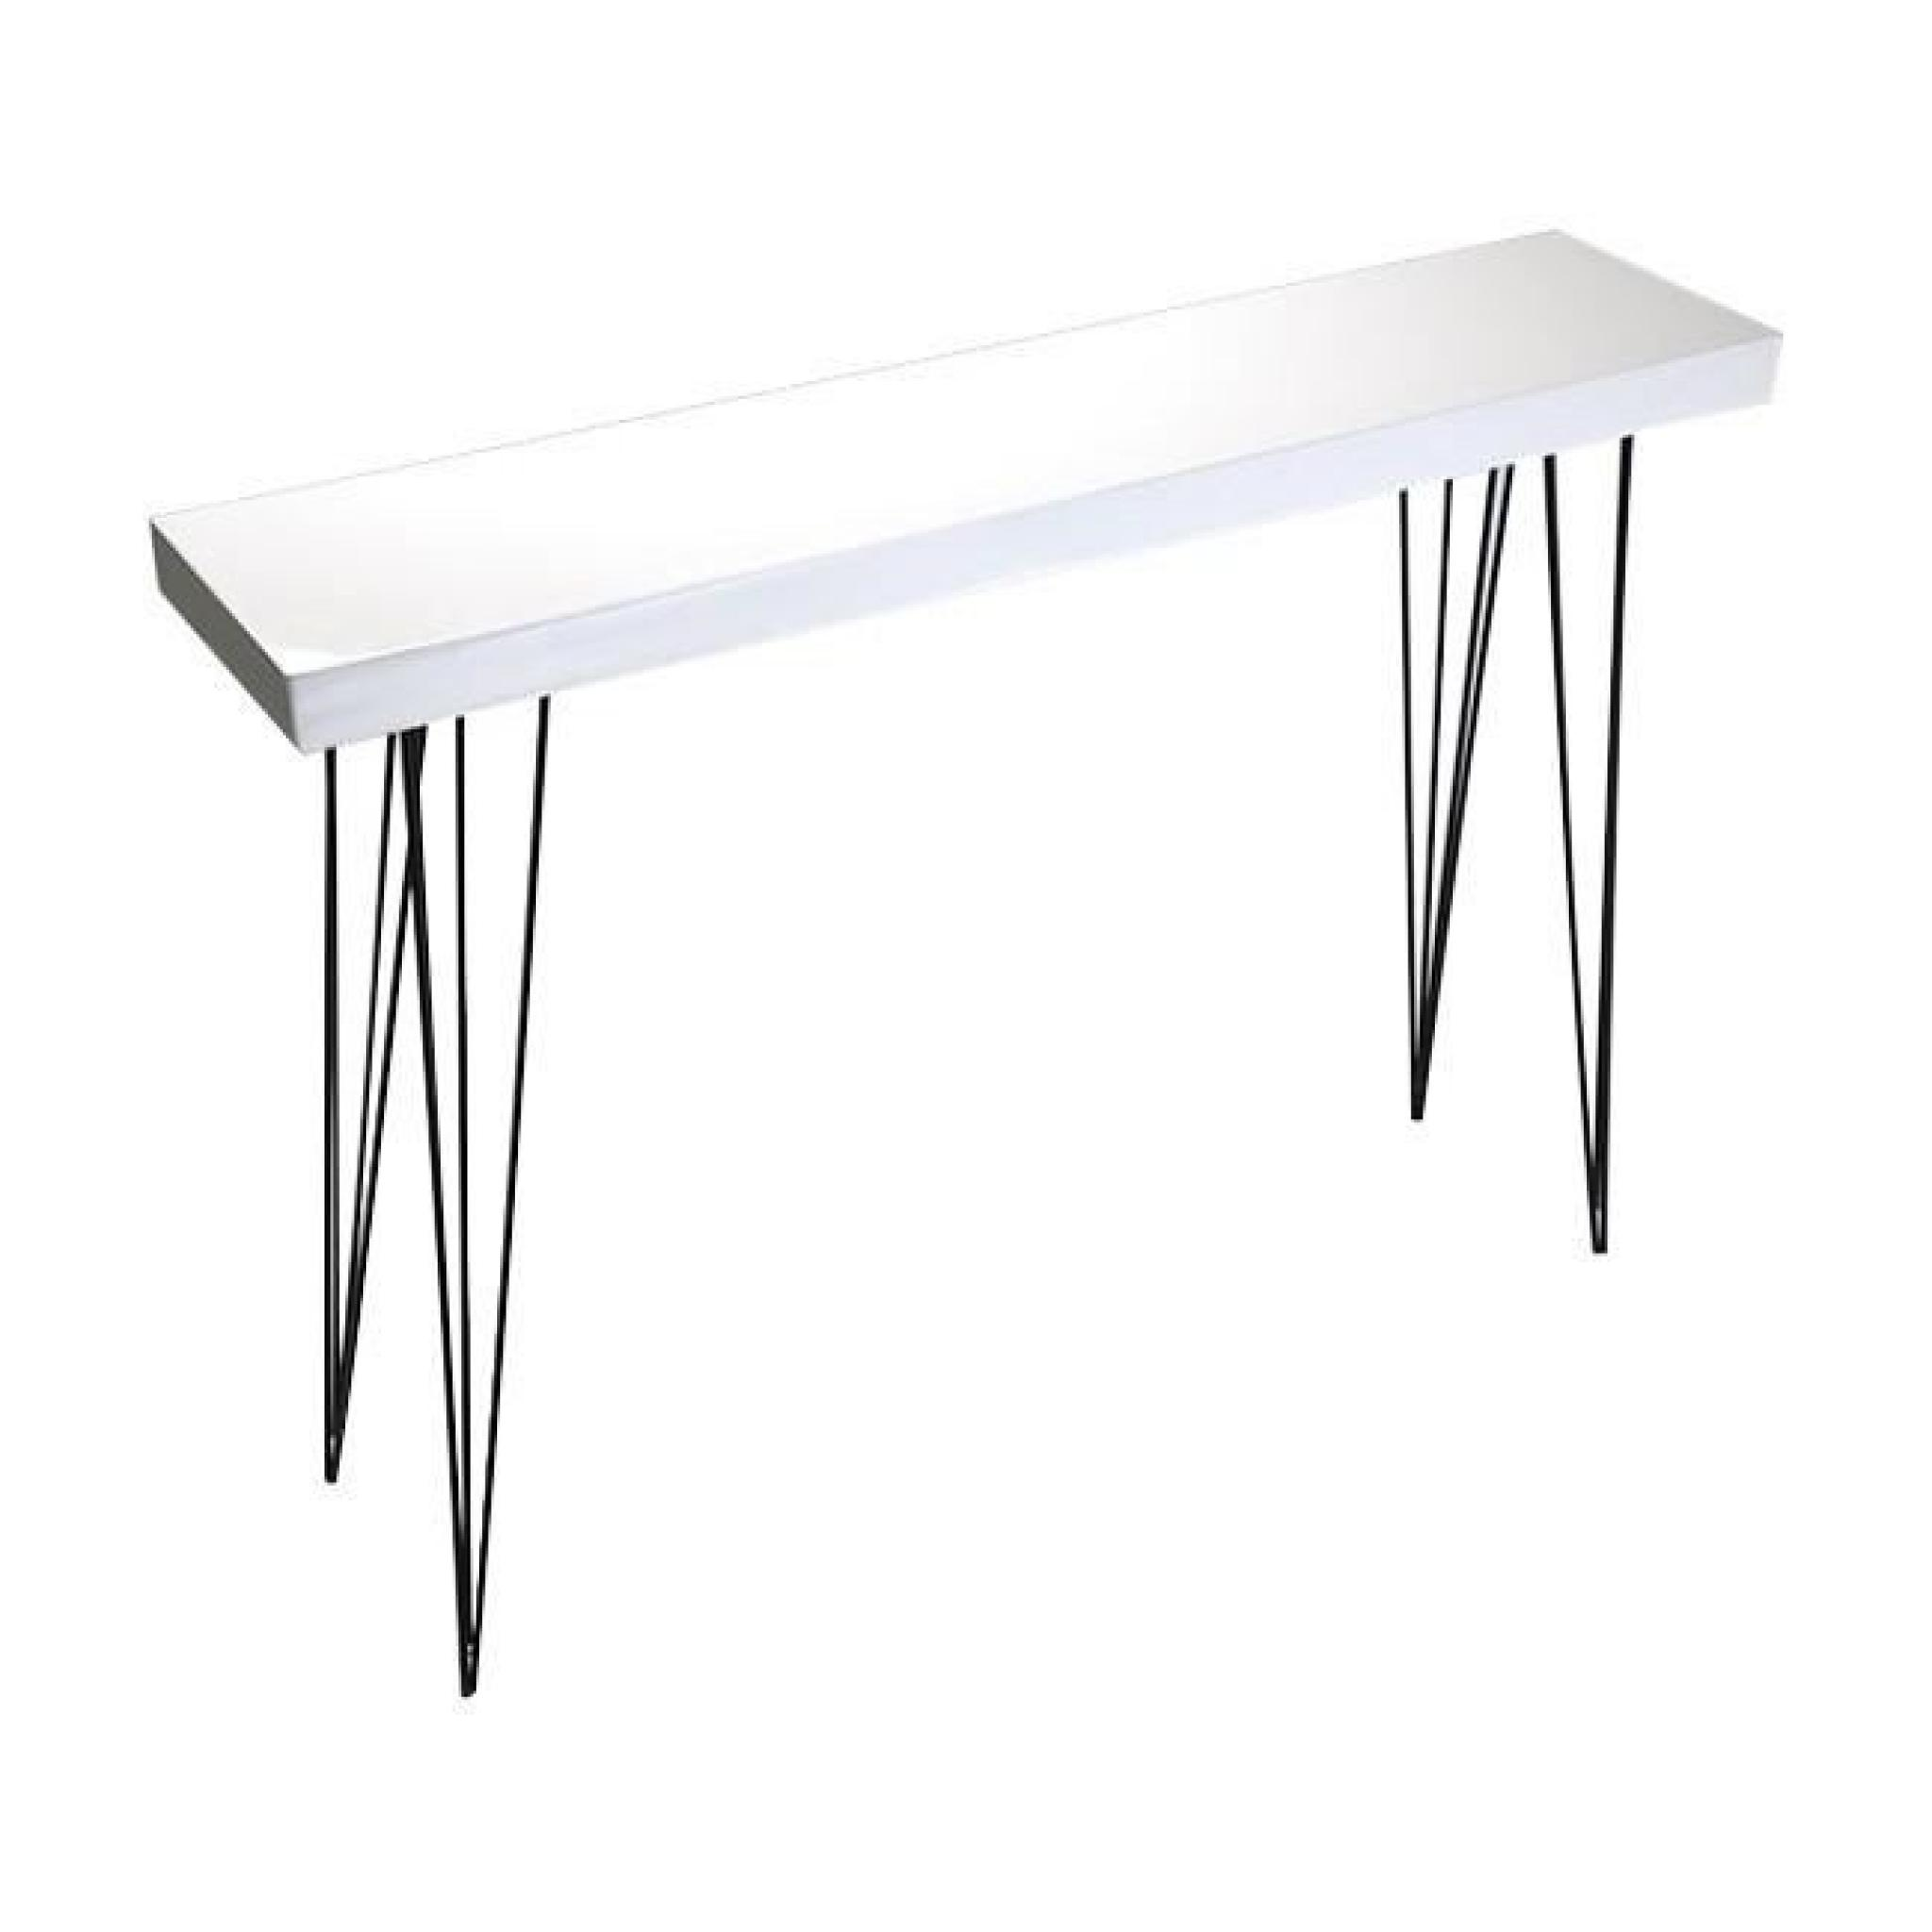 table d 39 entr e console en bois laqu blanc et m tal noir dallas achat vente console meuble pas. Black Bedroom Furniture Sets. Home Design Ideas